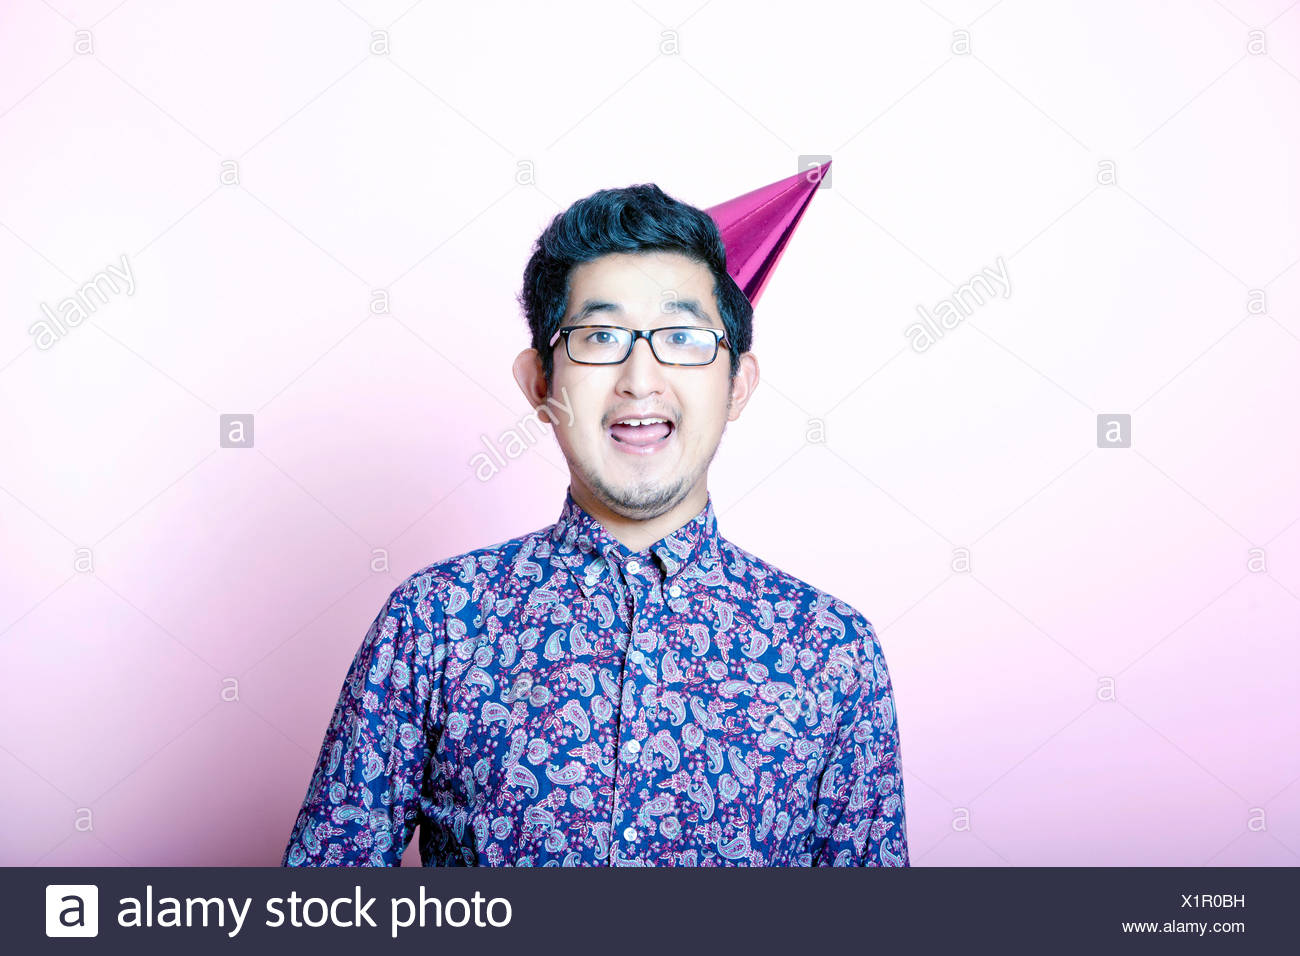 Young Geeky Asian Man wearing party hat - Stock Image